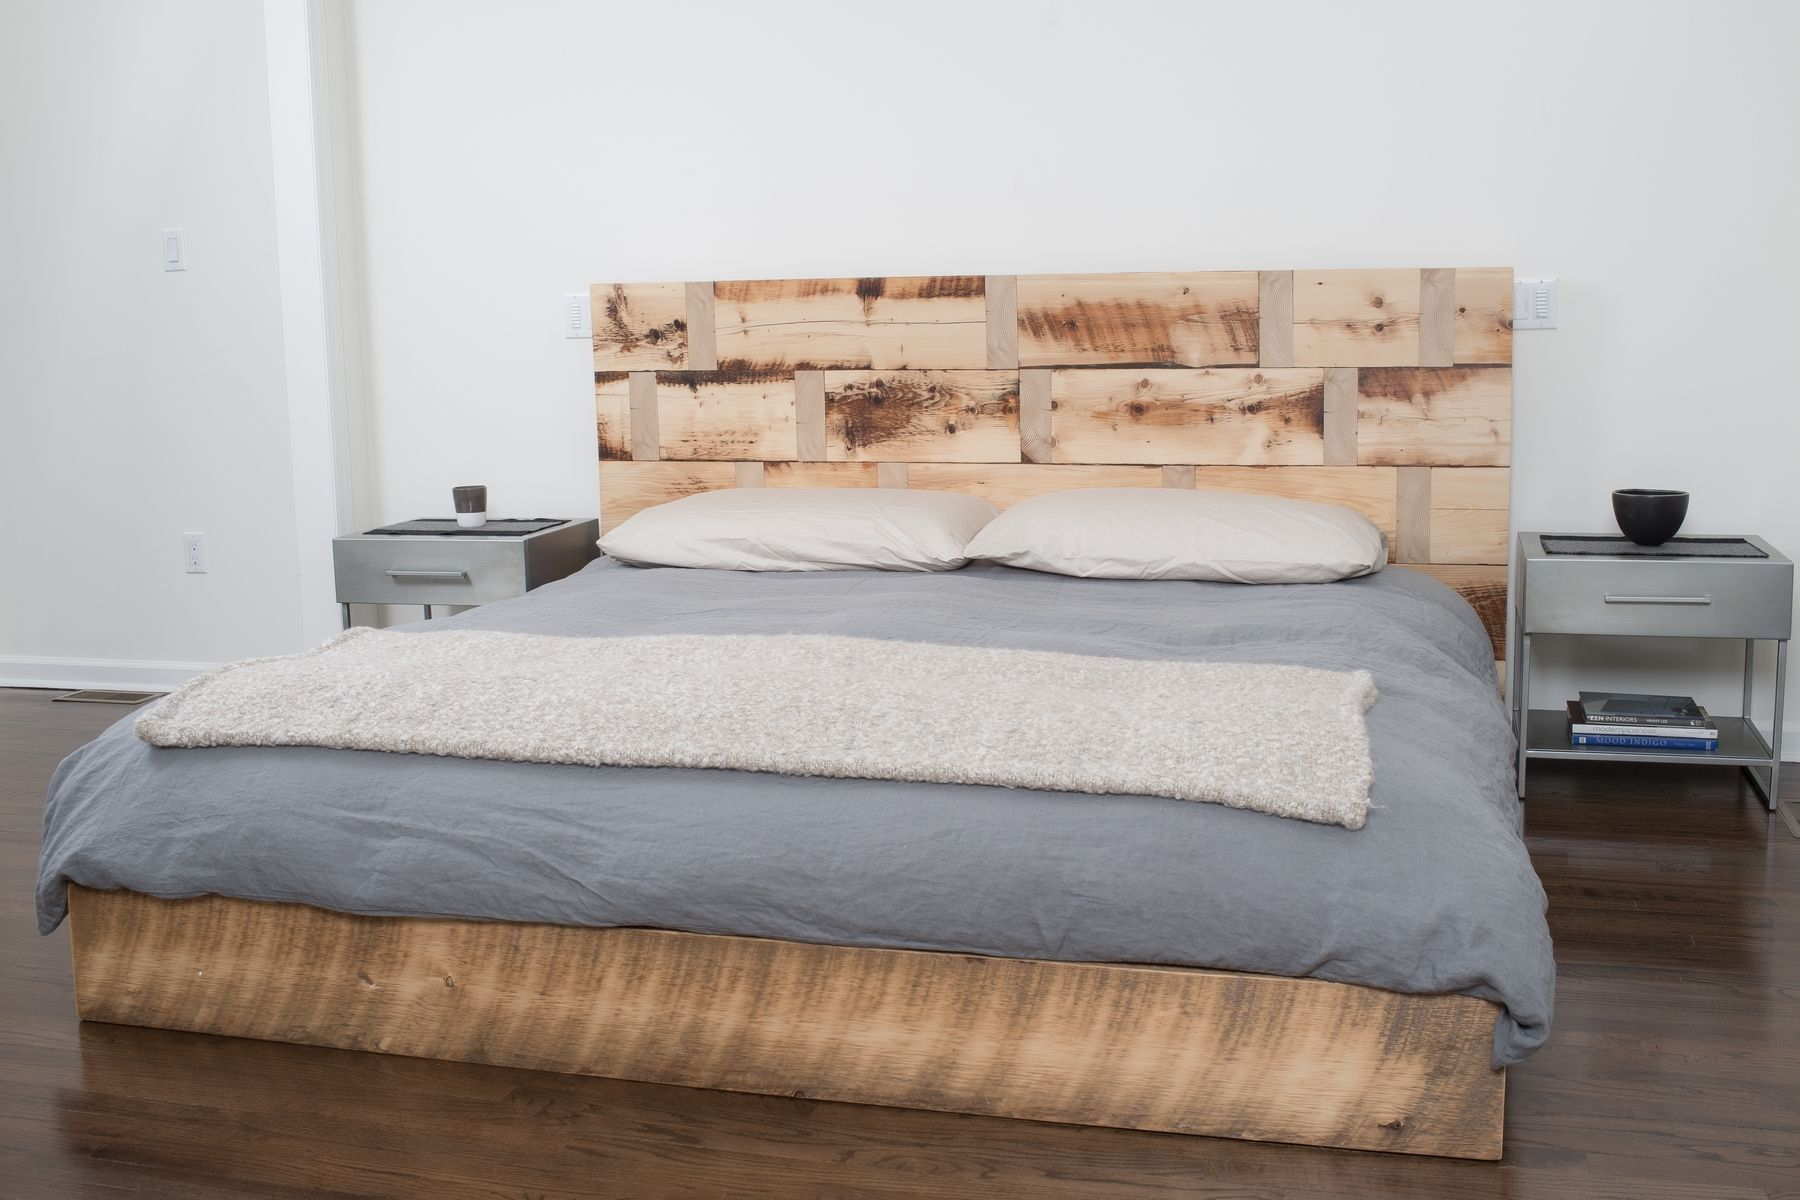 reclaimed king rhg architecture custom bed hand design headboard made by platform rachaelgrochowski wood